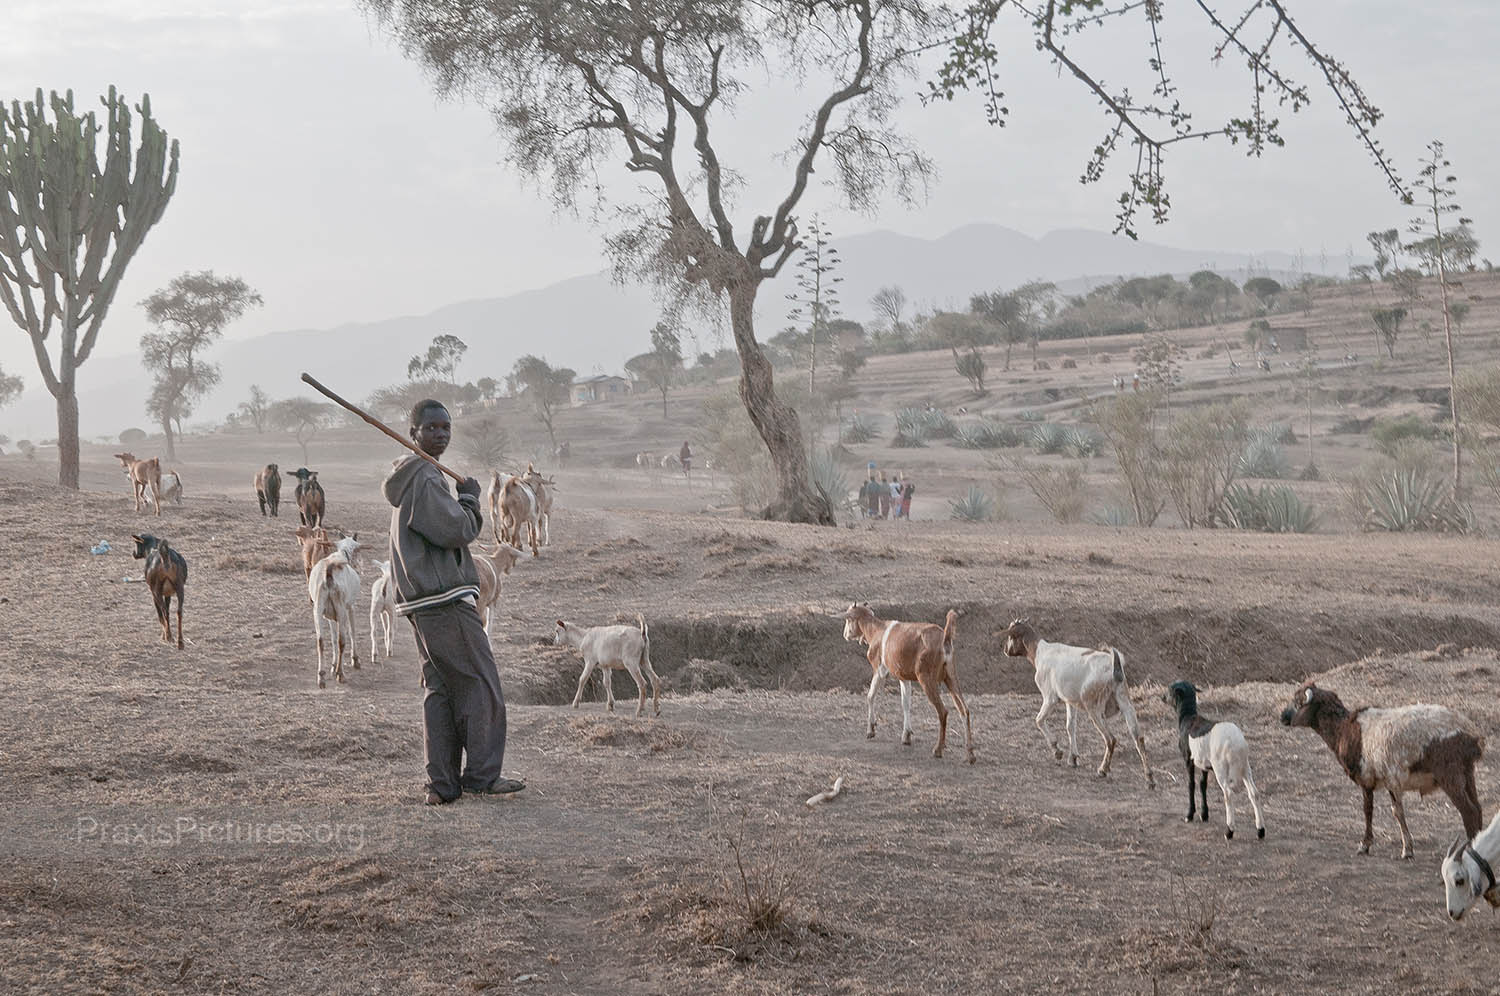 SEARCHING FOR WATER AND PASTURES - What little remains of the communities' livestock are on the move everyday to find grazing land and water.